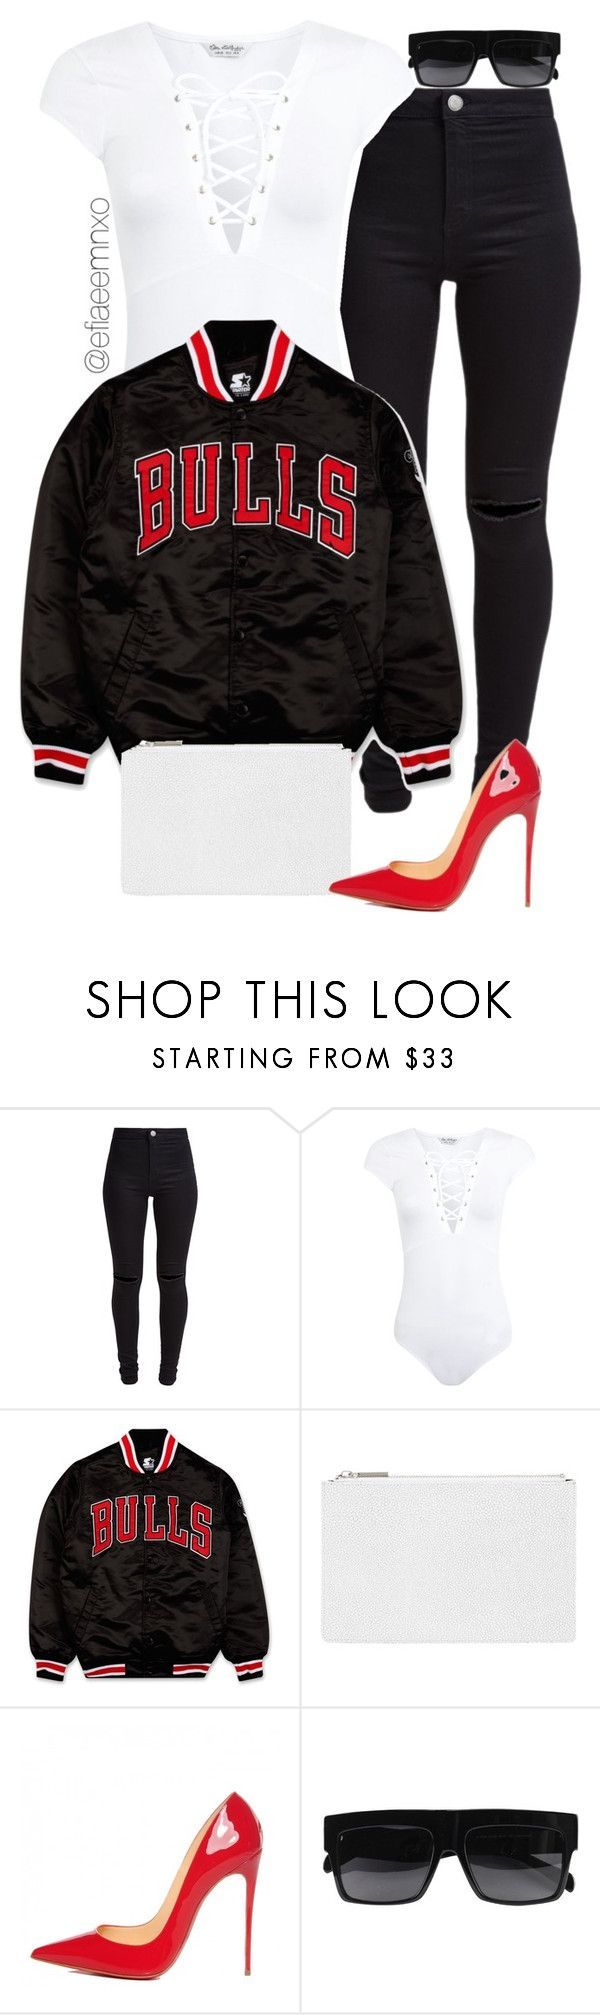 Bulls by efiaeemnxo ❤ liked on Polyvore featuring New Look, Miss Selfridge, Starter, Whistles, Christian Louboutin, womens clothing, women, female, woman and misses